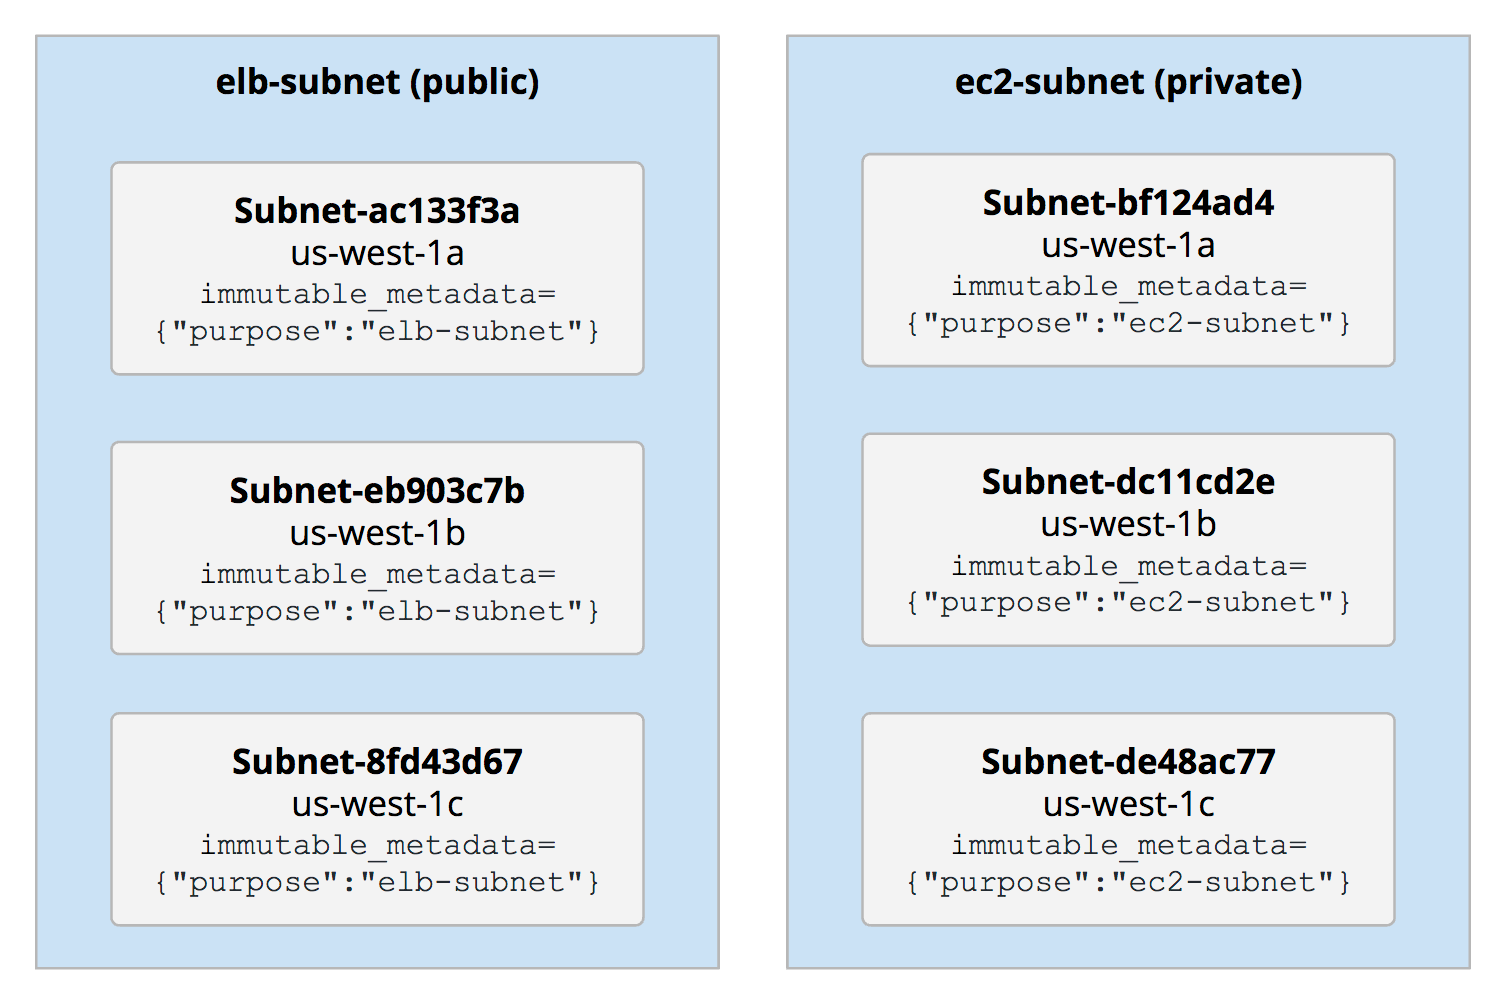 subnets groups